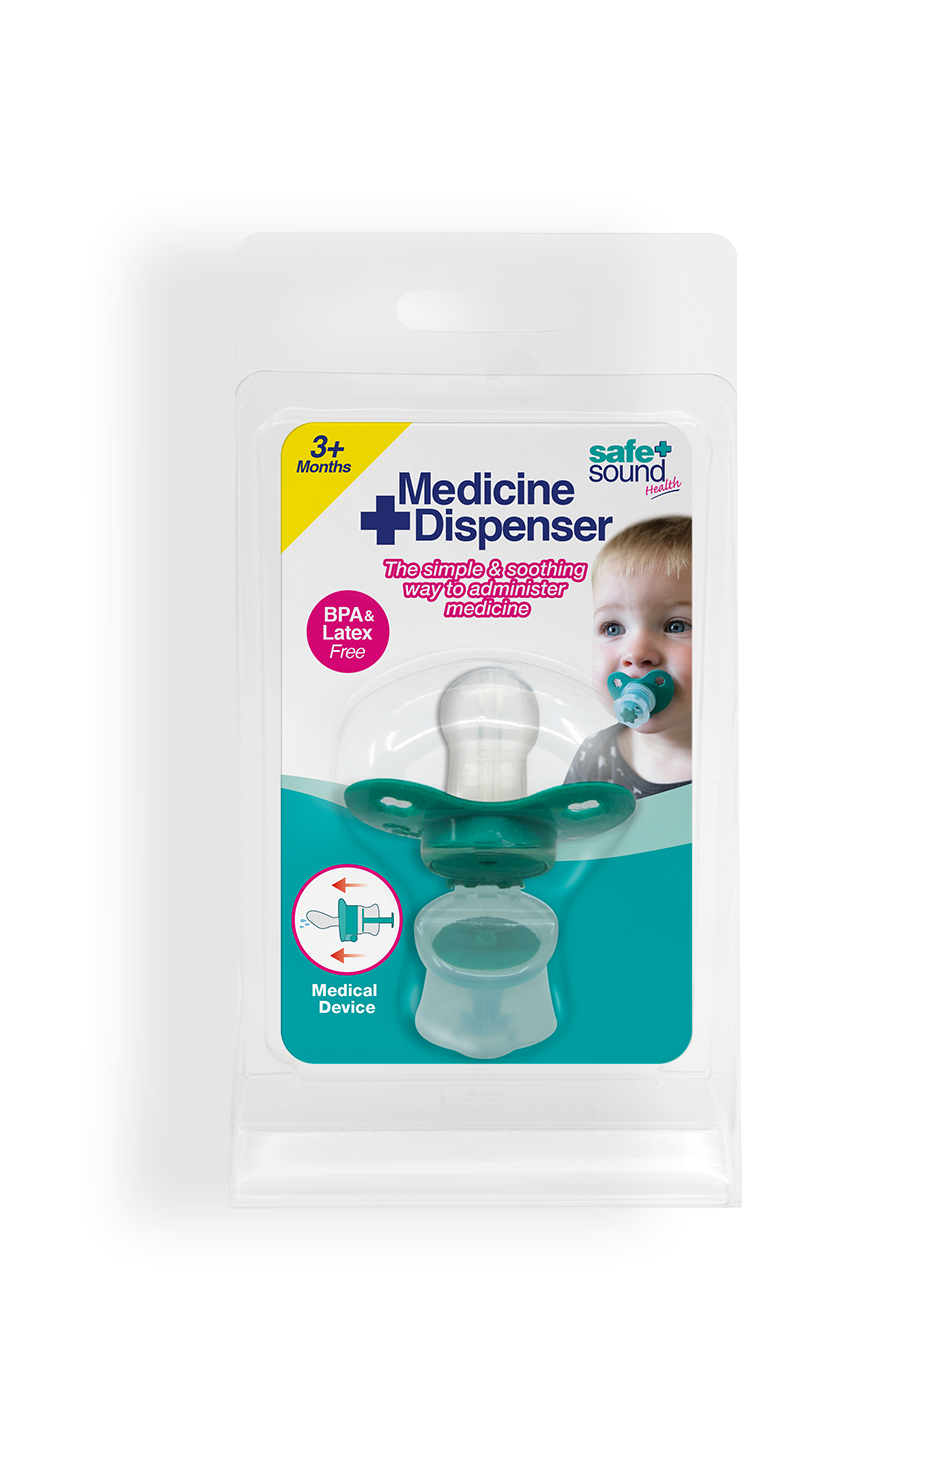 Safe and Sound Health Baby Medicine Dispenser